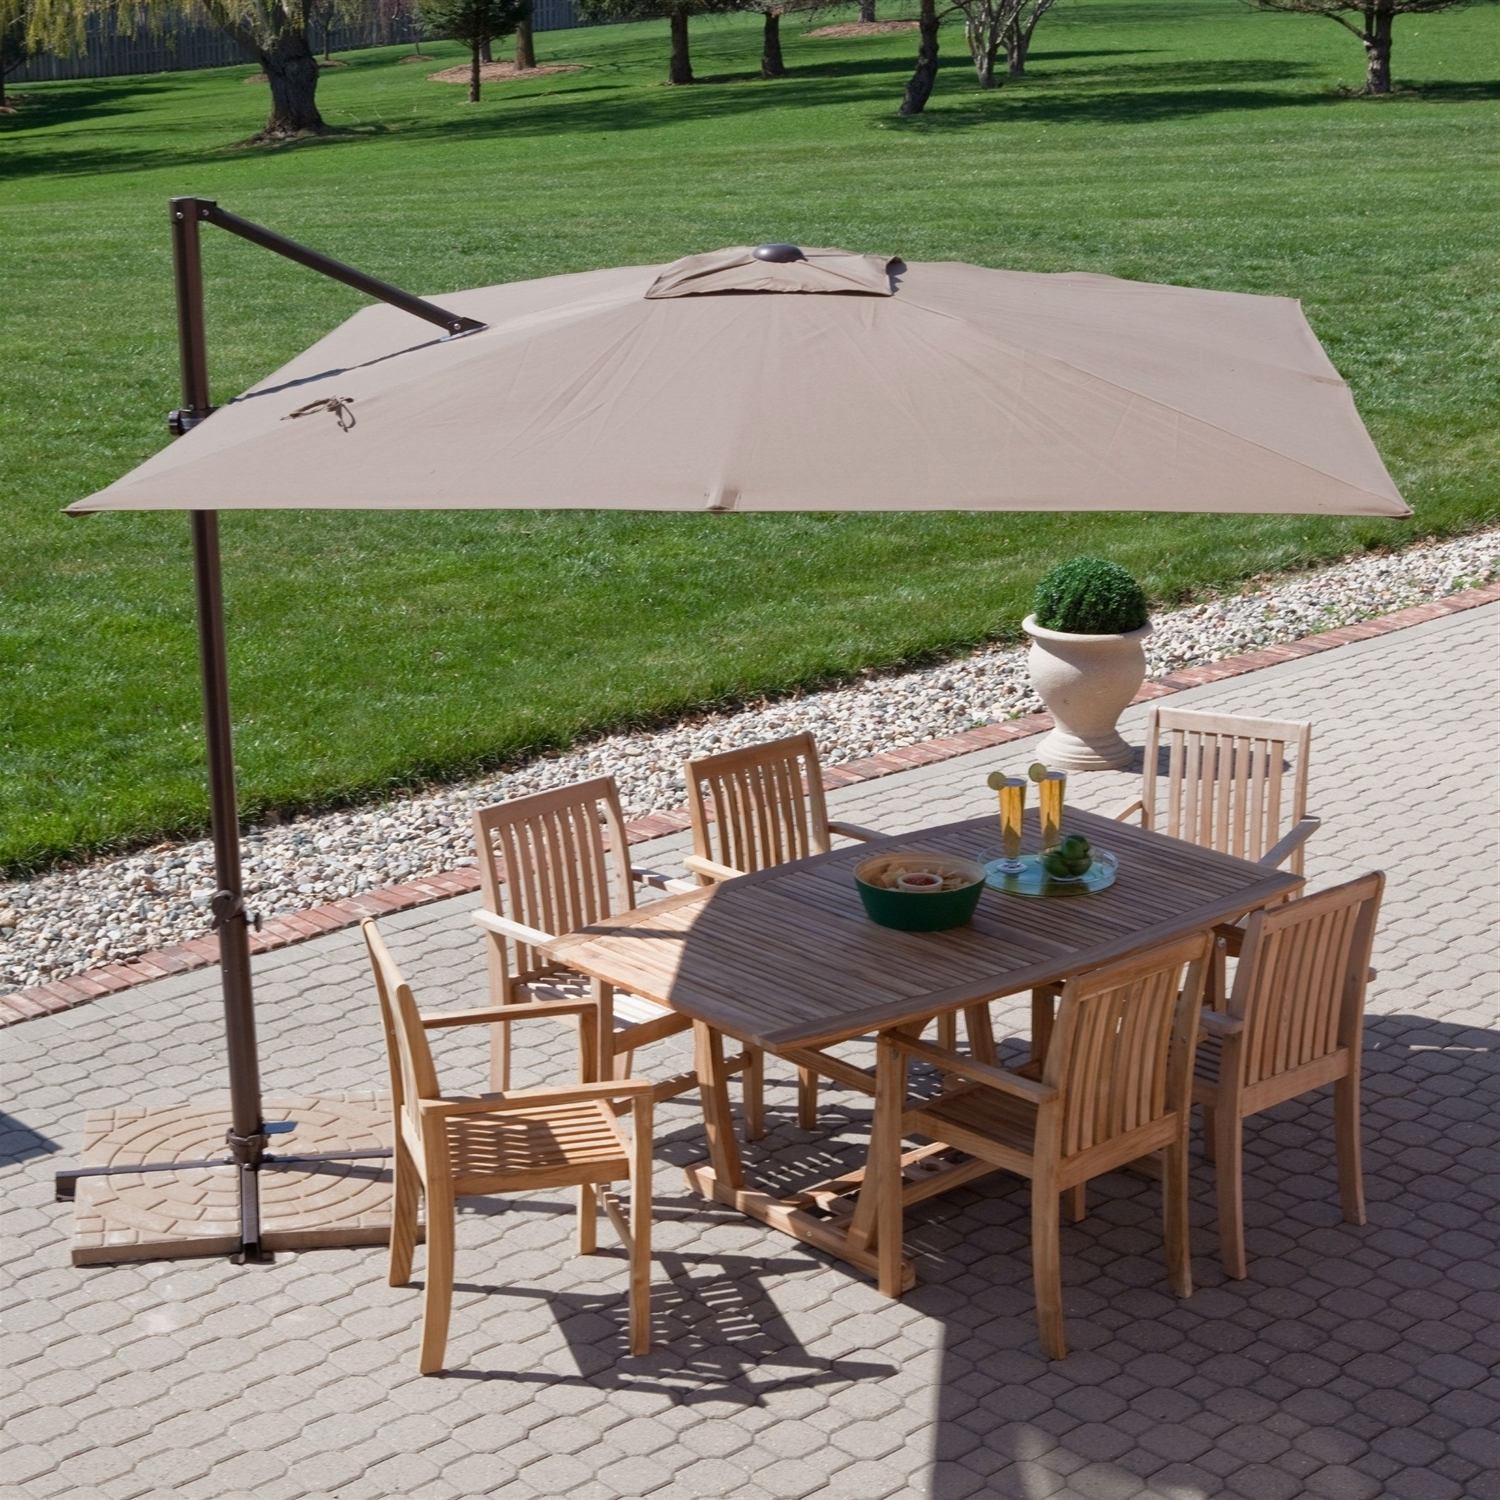 2019 Patio Umbrellas With Table Inside A Guide To Buying Offset Patio Umbrella – Blogbeen (View 13 of 20)